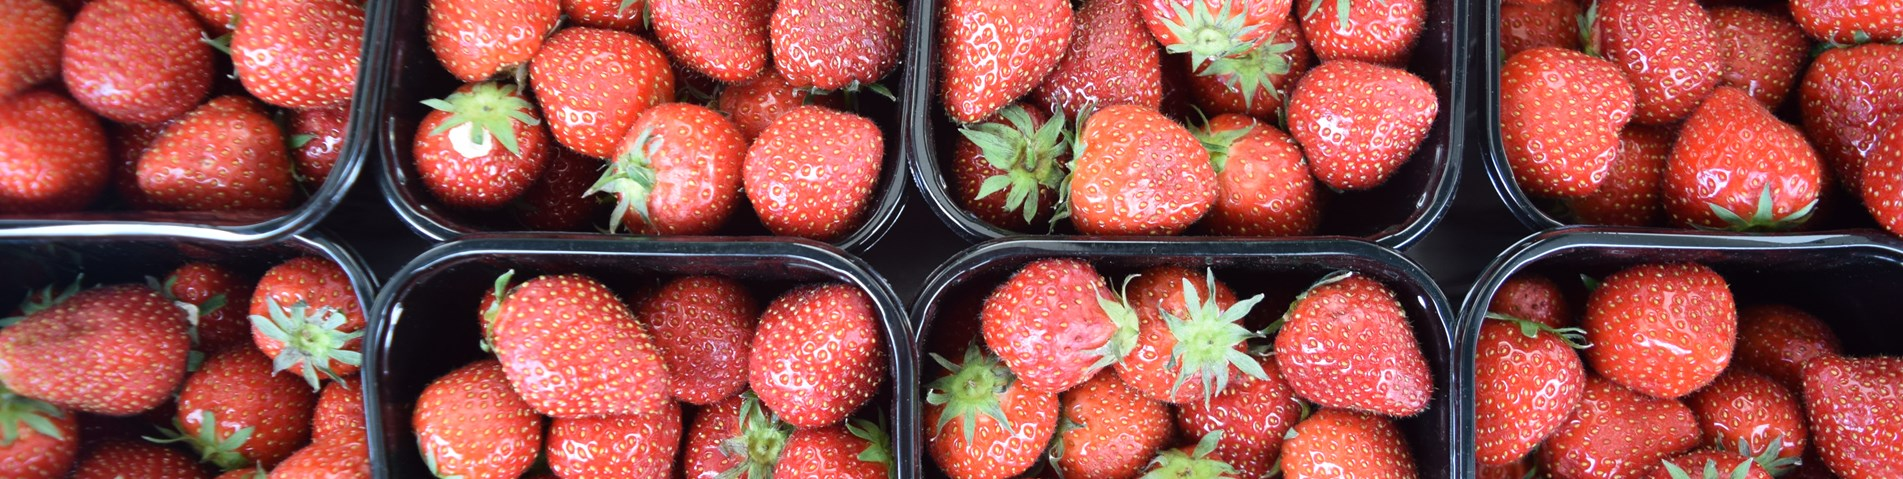 Strawberries SOUTH WARWICKSHIRE HOSPITALS - JUNE 2015 (31).JPG